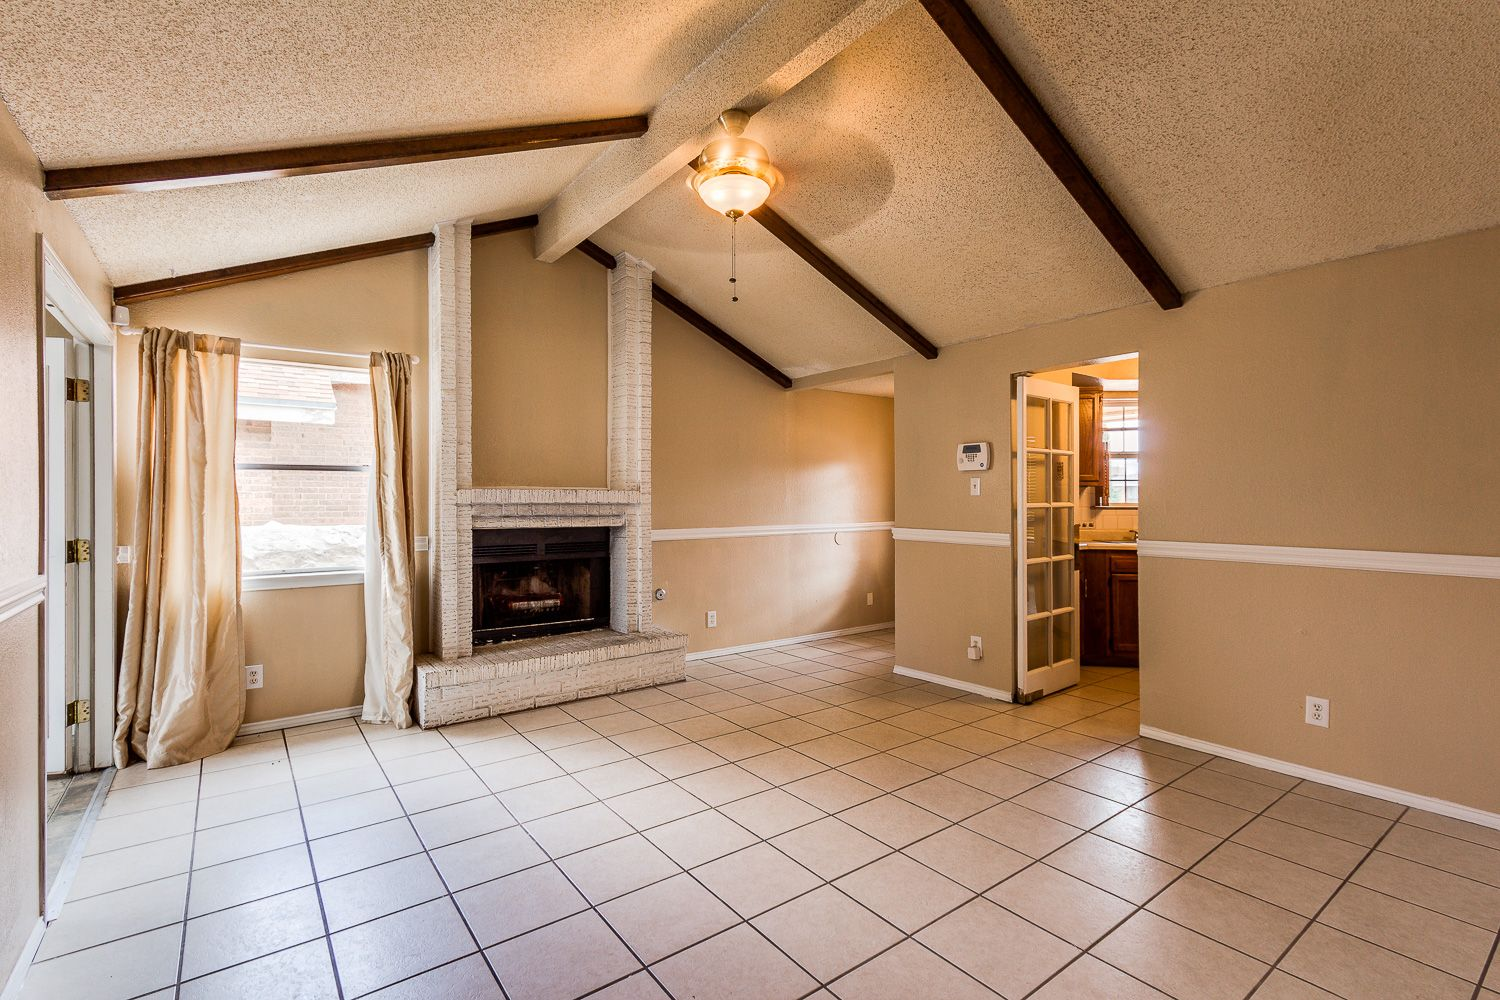 Single Story Home Located In The Northeast Give Us A Call To Schedule A Tour Today 915 585 8217 5033 Becknell Ln Renting A House Home Single Story Homes